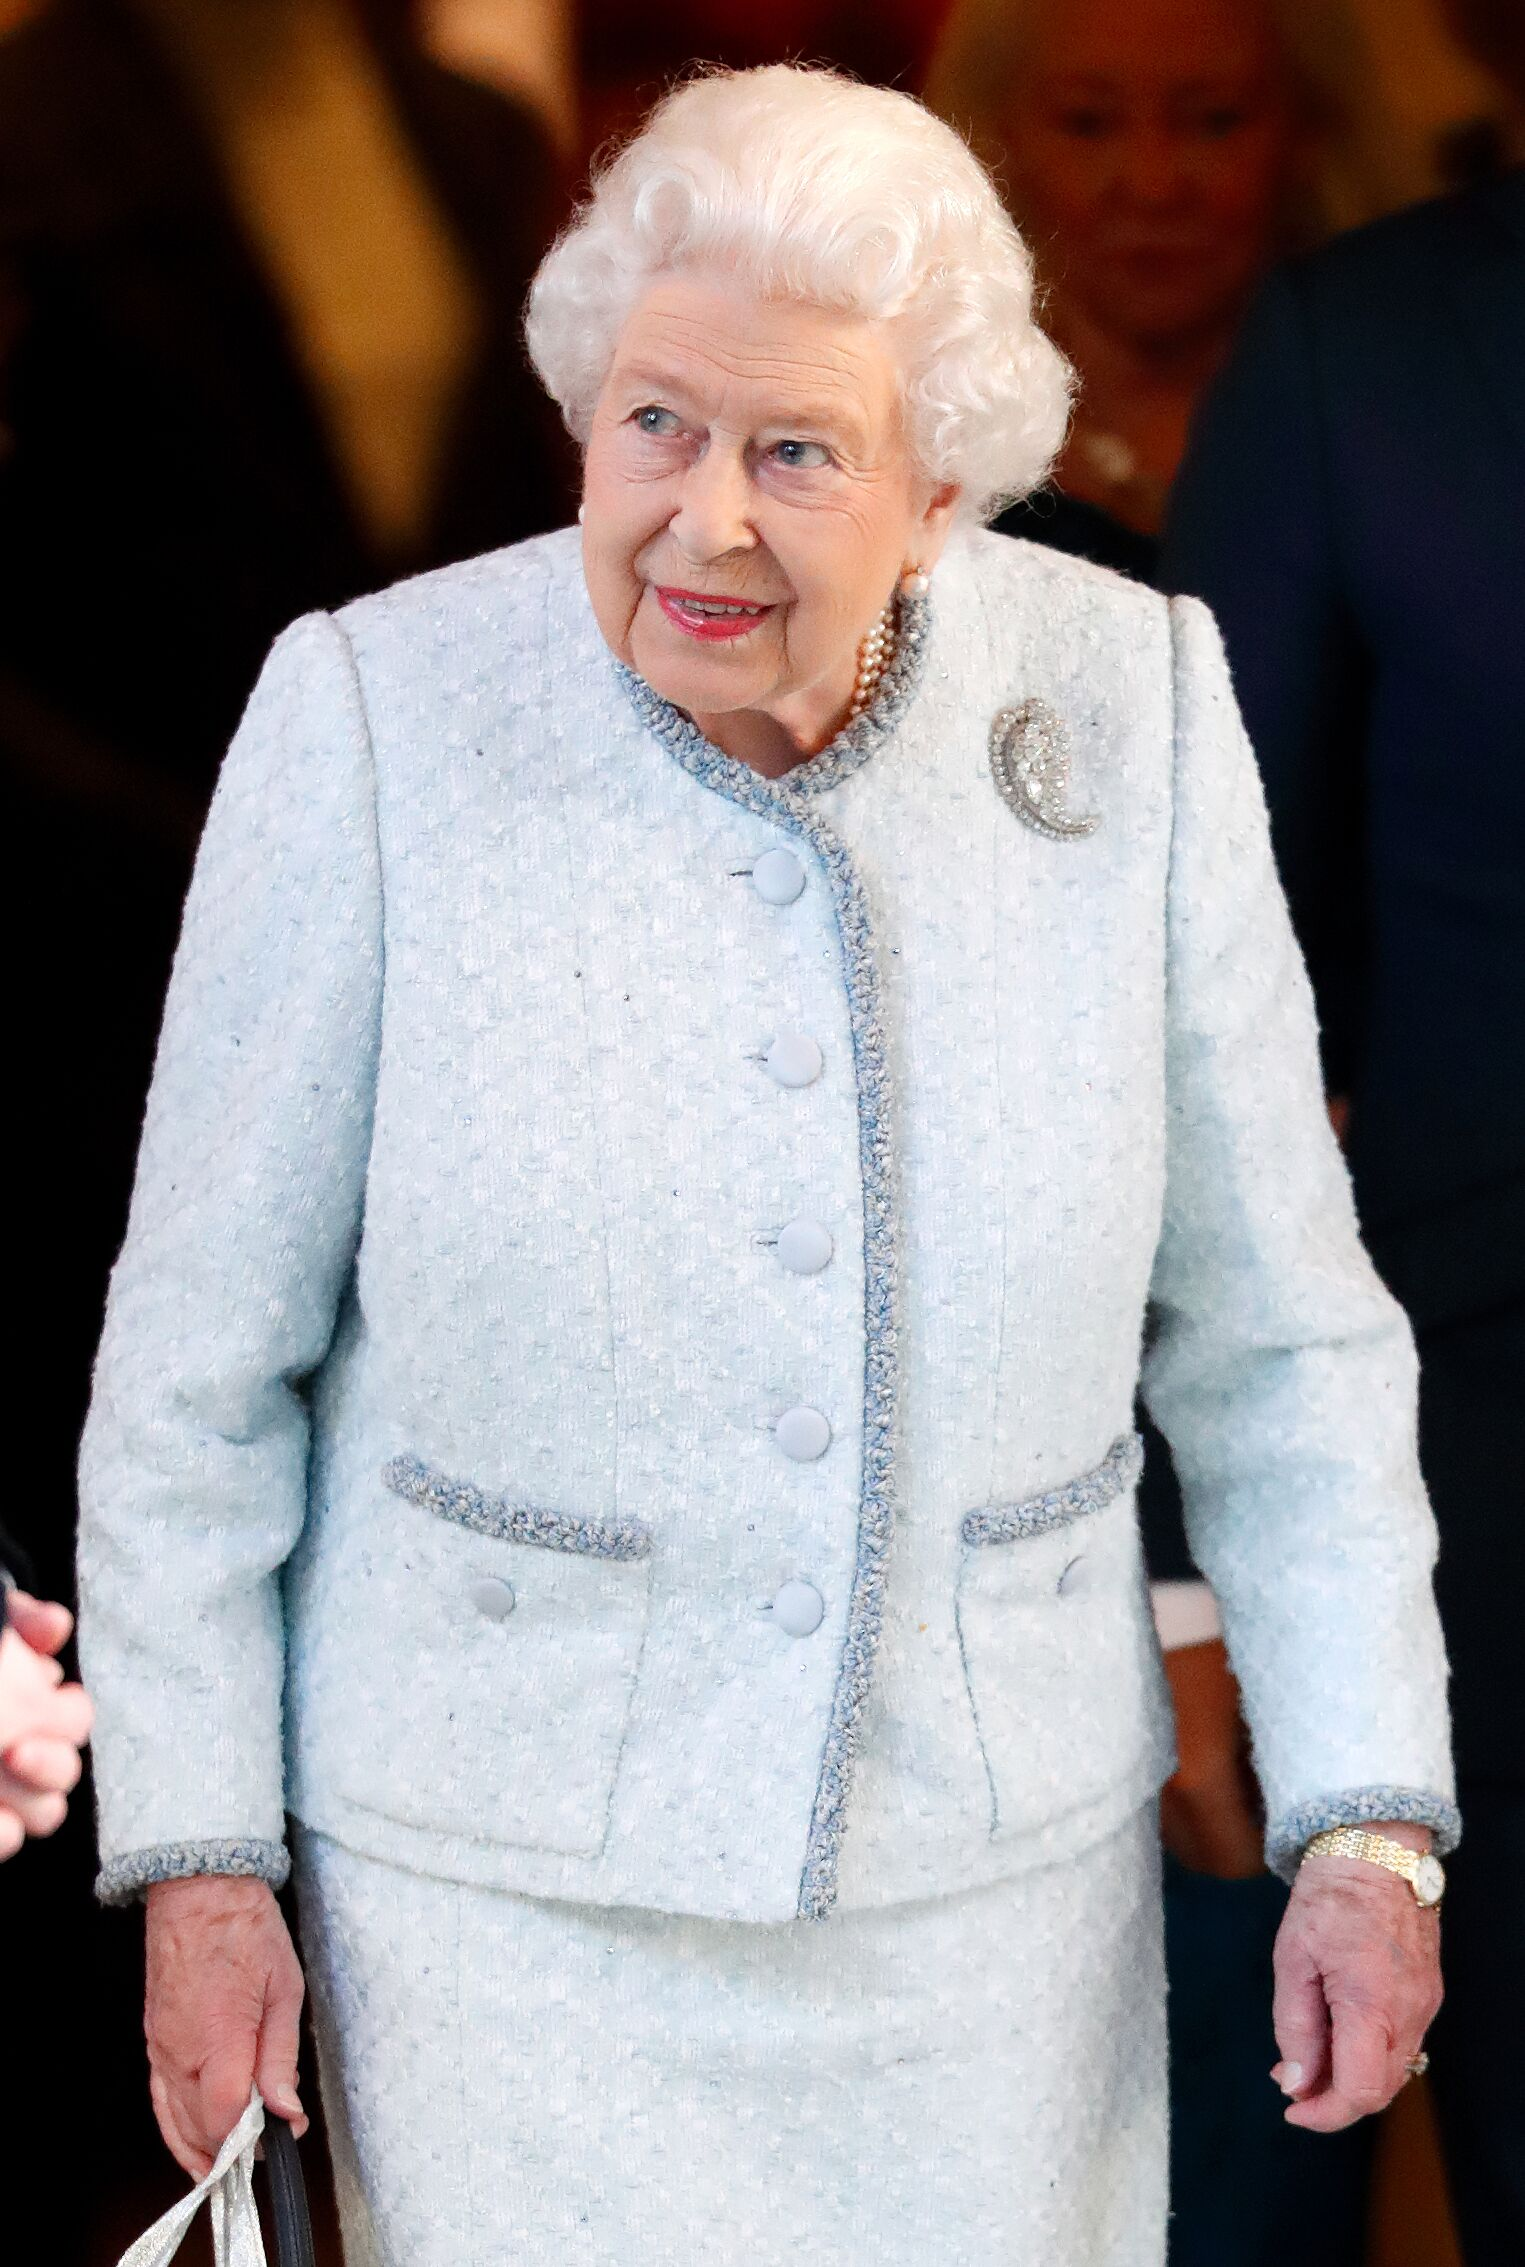 Queen Elizabeth II at a Christmas lunch on December 11, 2018, in London | Photo: Getty Images